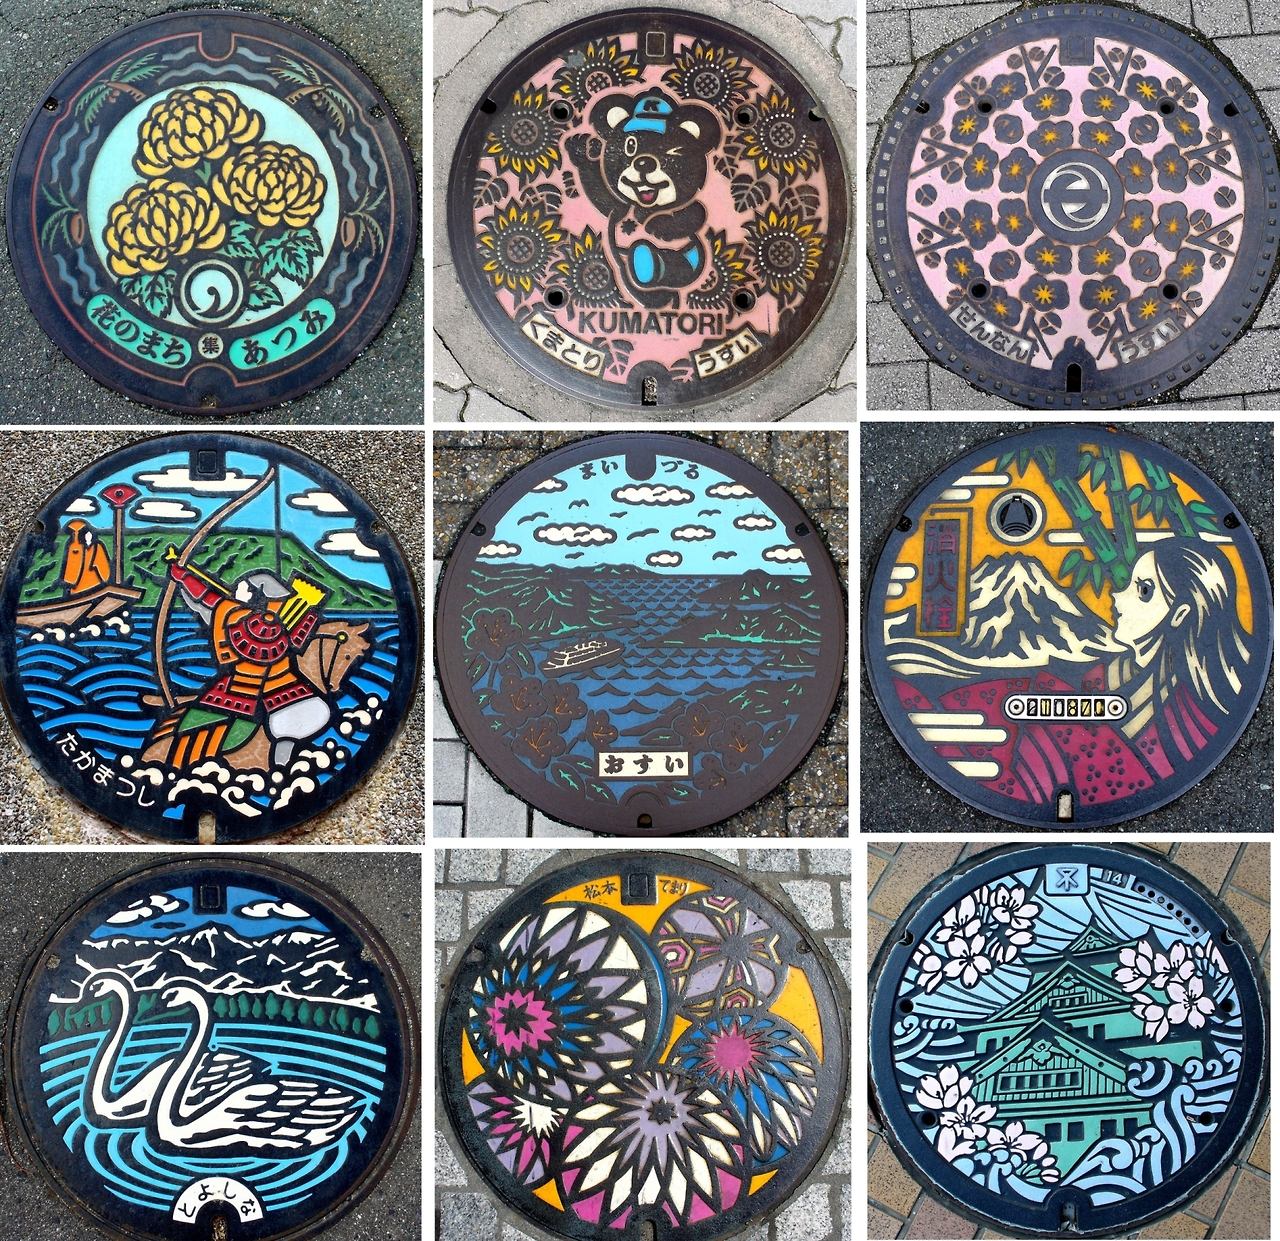 Transforming Mundane Objects into Works of Art: Japanese Manhole Covers